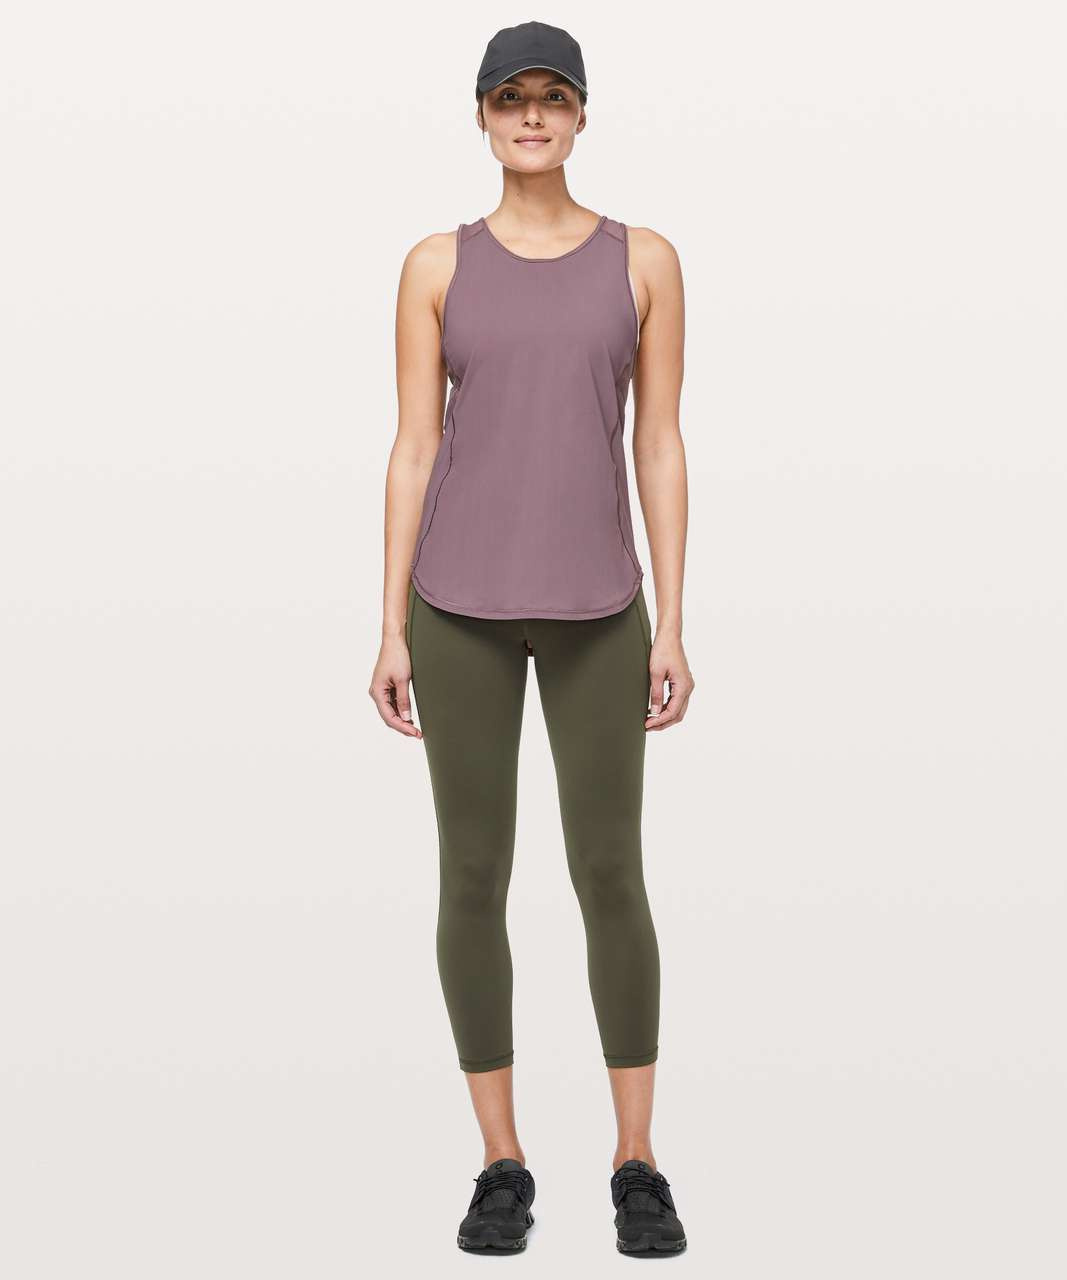 Lululemon Sculpt Tank II - Antique Bark